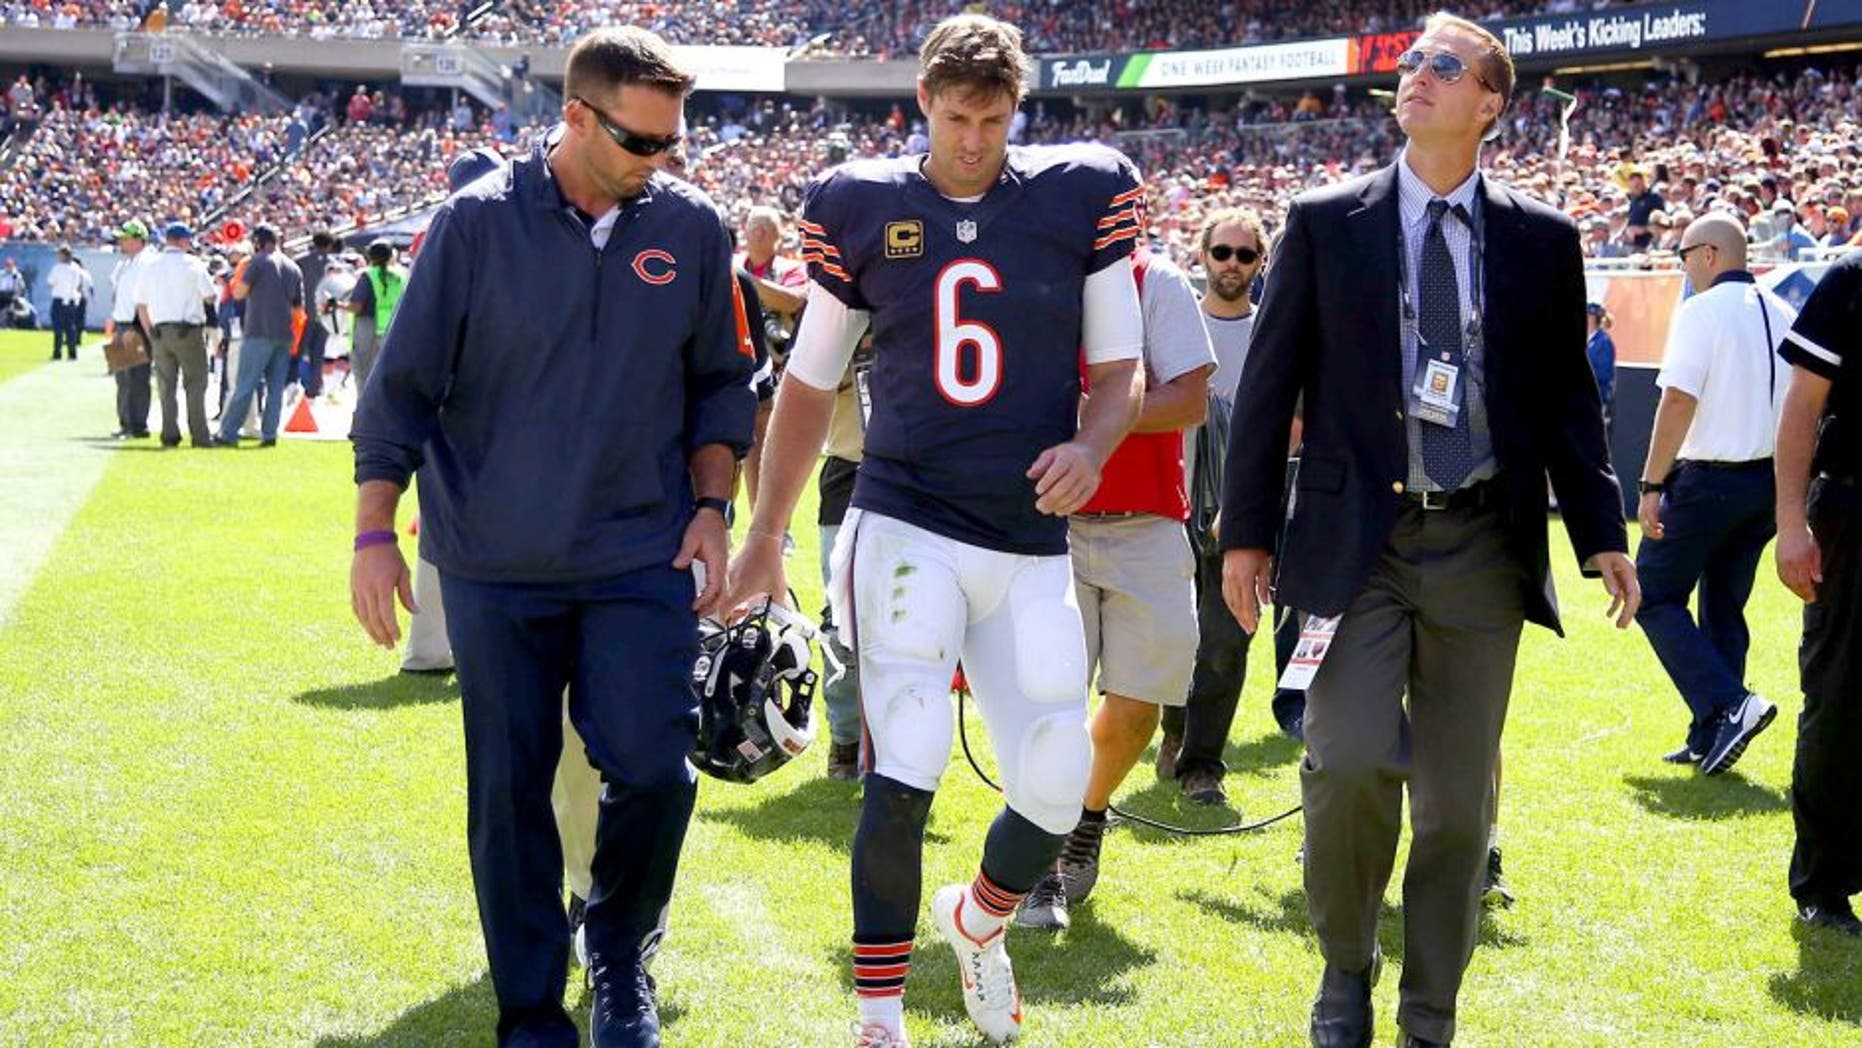 Sep 20, 2015; Chicago, IL, USA; Chicago Bears quarterback Jay Cutler (6) walks off the field after an apparent injury during the first half against the Arizona Cardinals at Soldier Field. Mandatory Credit: Dennis Wierzbicki-USA TODAY Sports